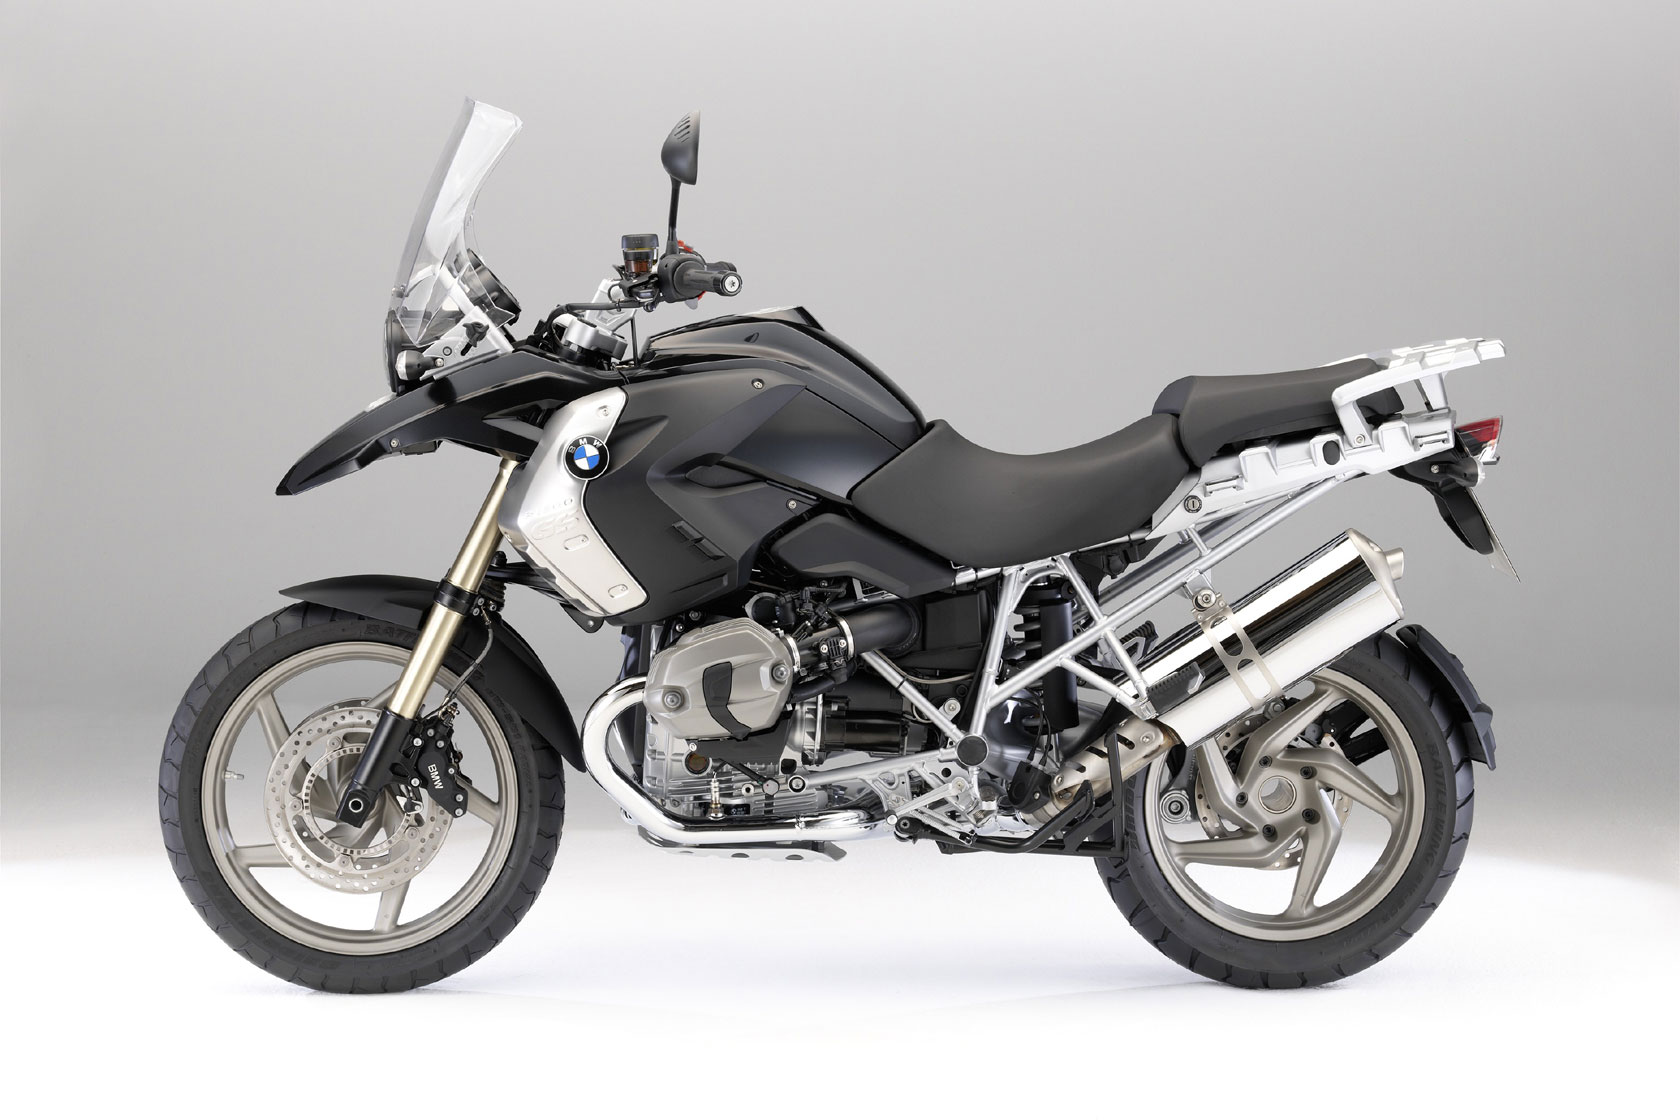 2010 bmw r1200gs. Black Bedroom Furniture Sets. Home Design Ideas